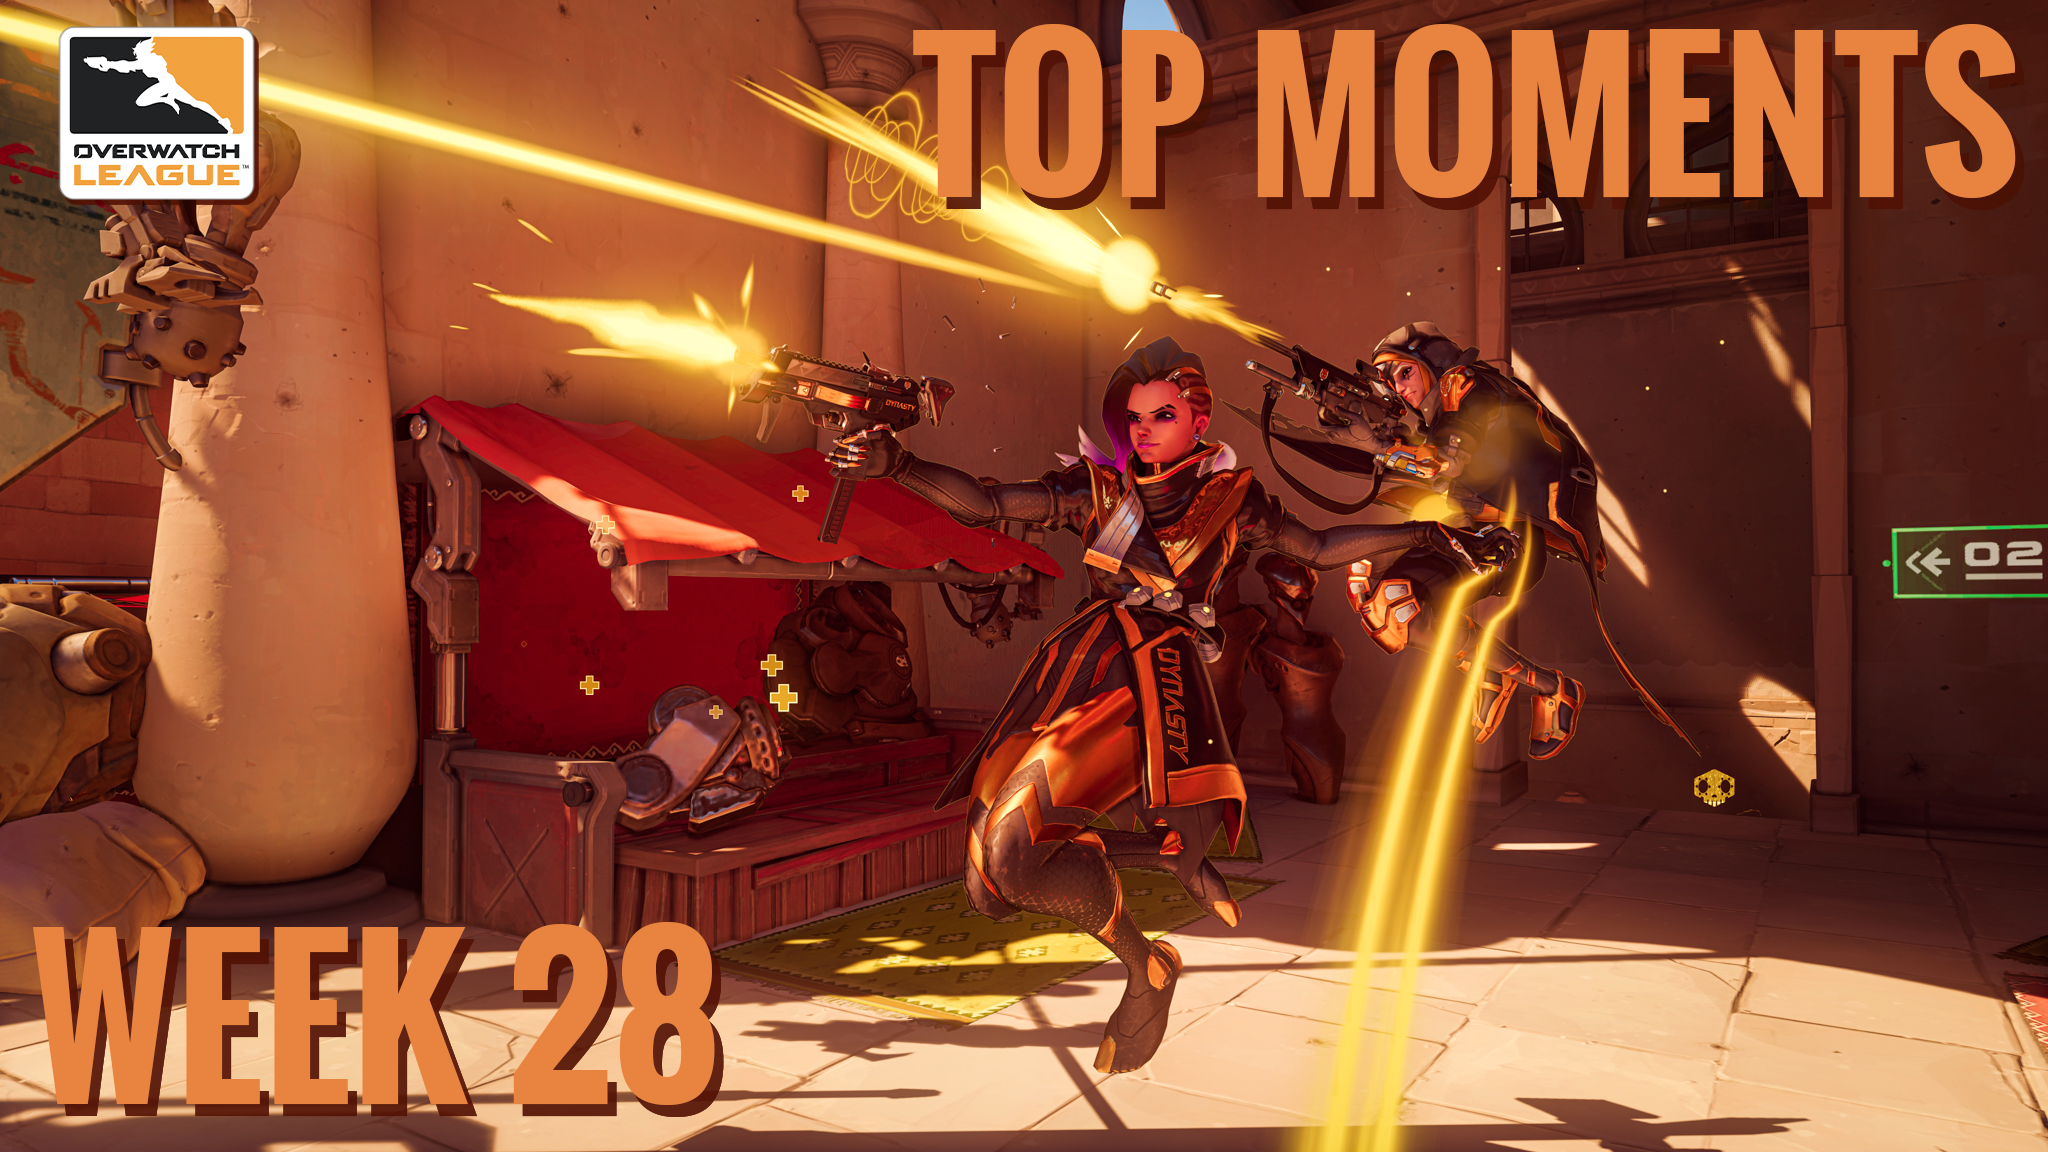 Overwatch League Top Moments Week 28